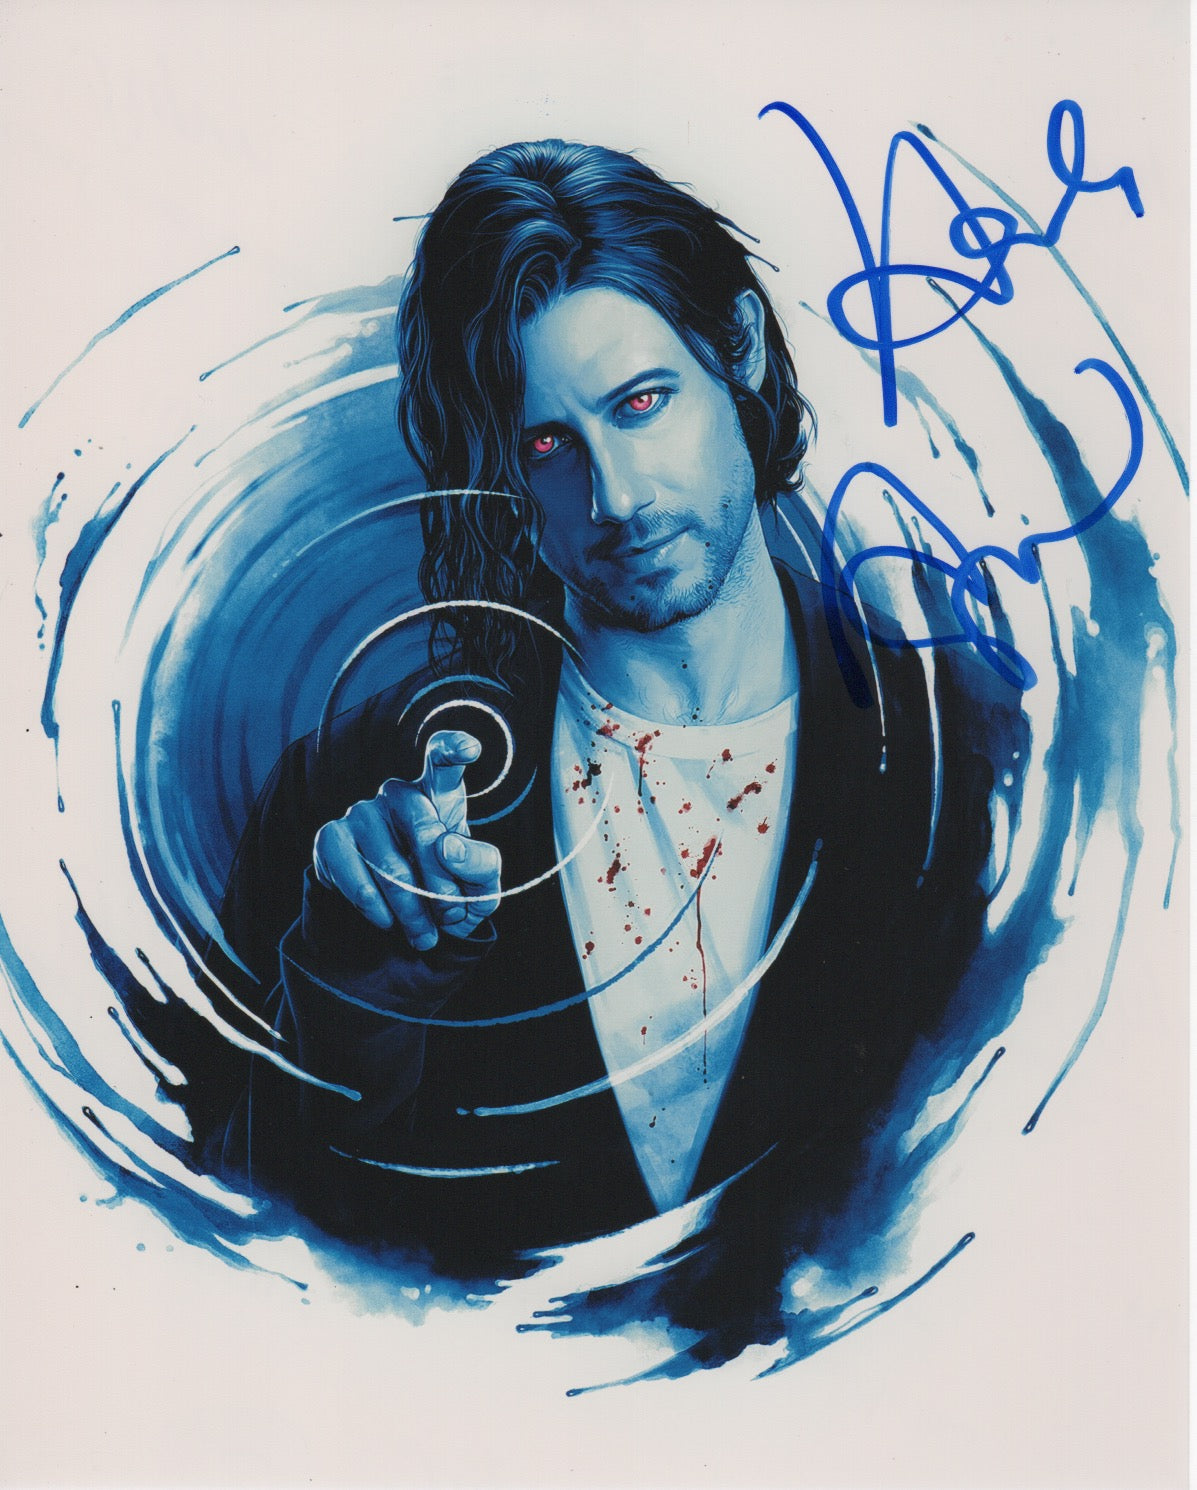 Hale Appleman Magicians Signed Autograph 8x10 Photo #8